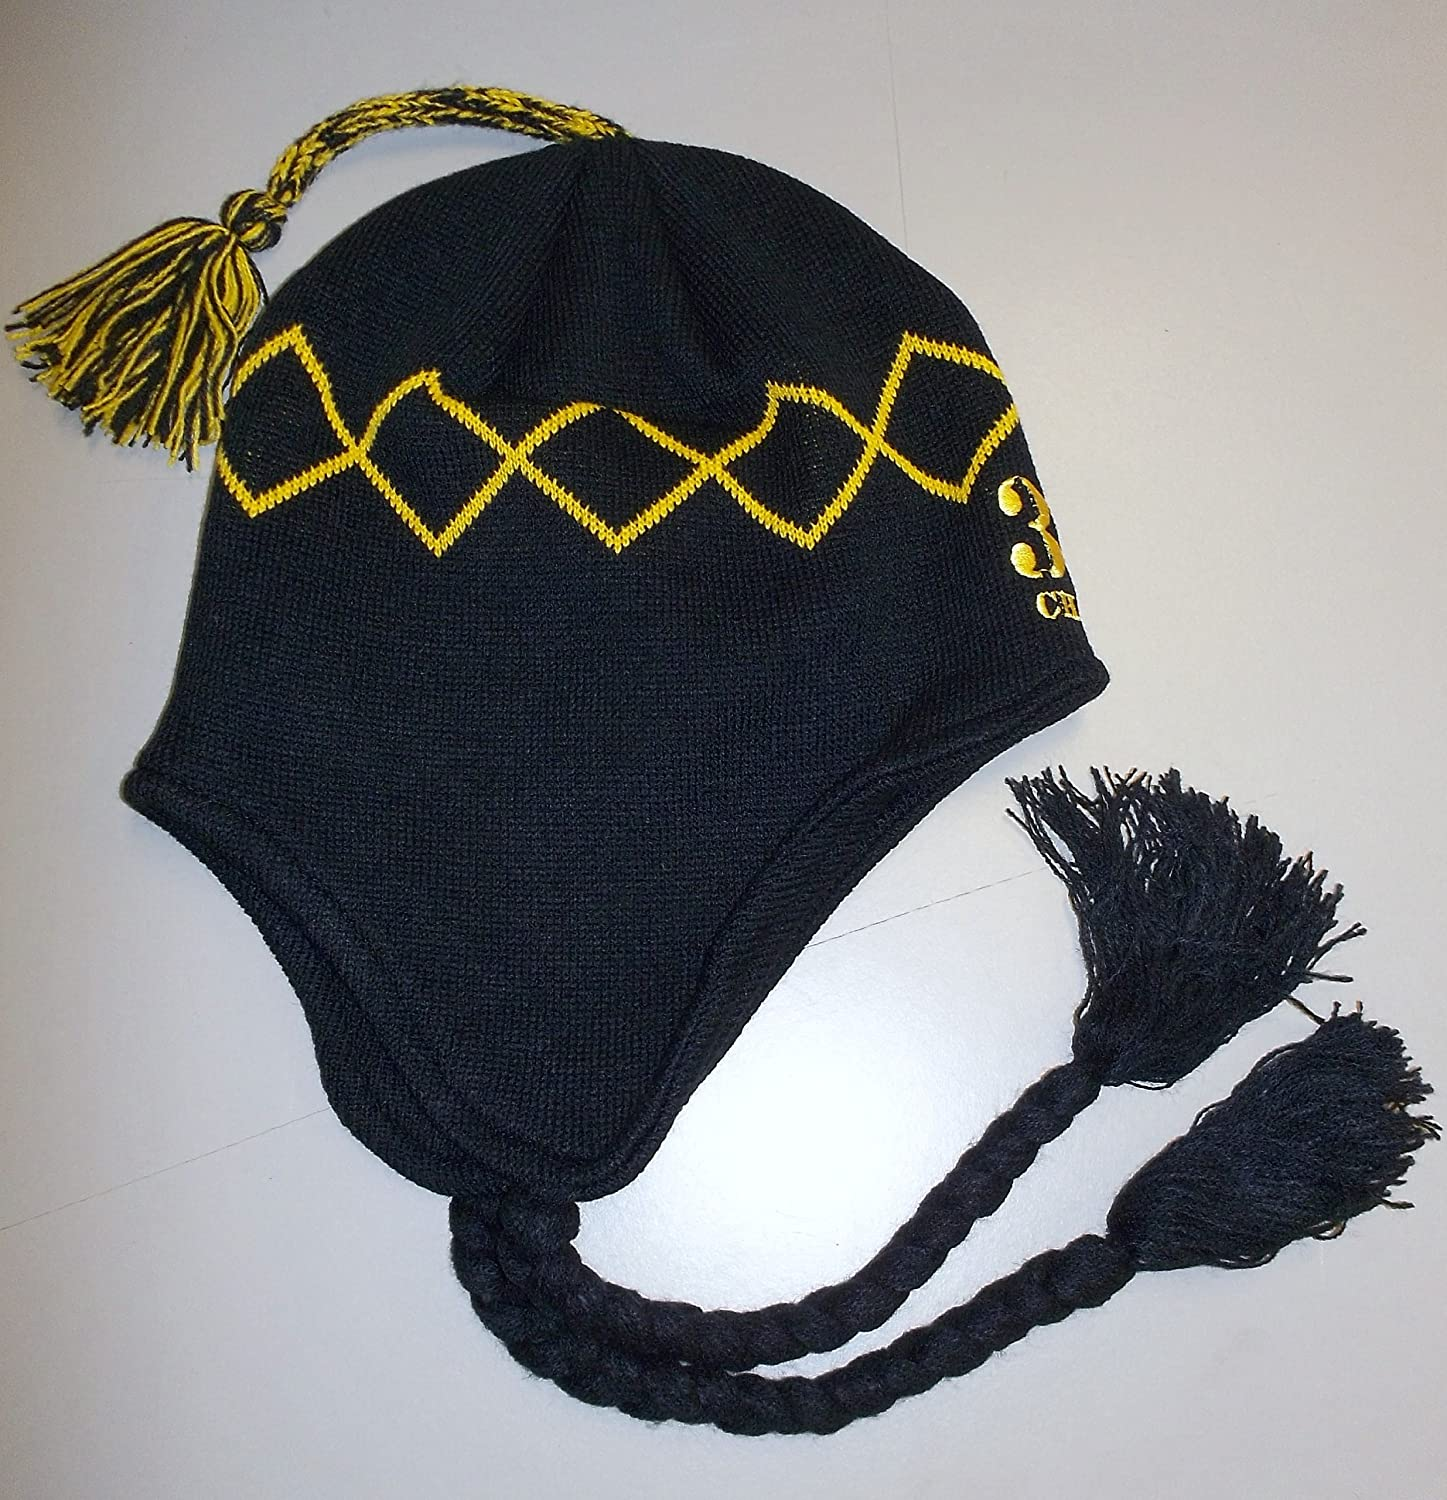 NHL Boston Bruins Chara 33 Long Tassel Top with Braids Knit Hat - OSFA - KZF35